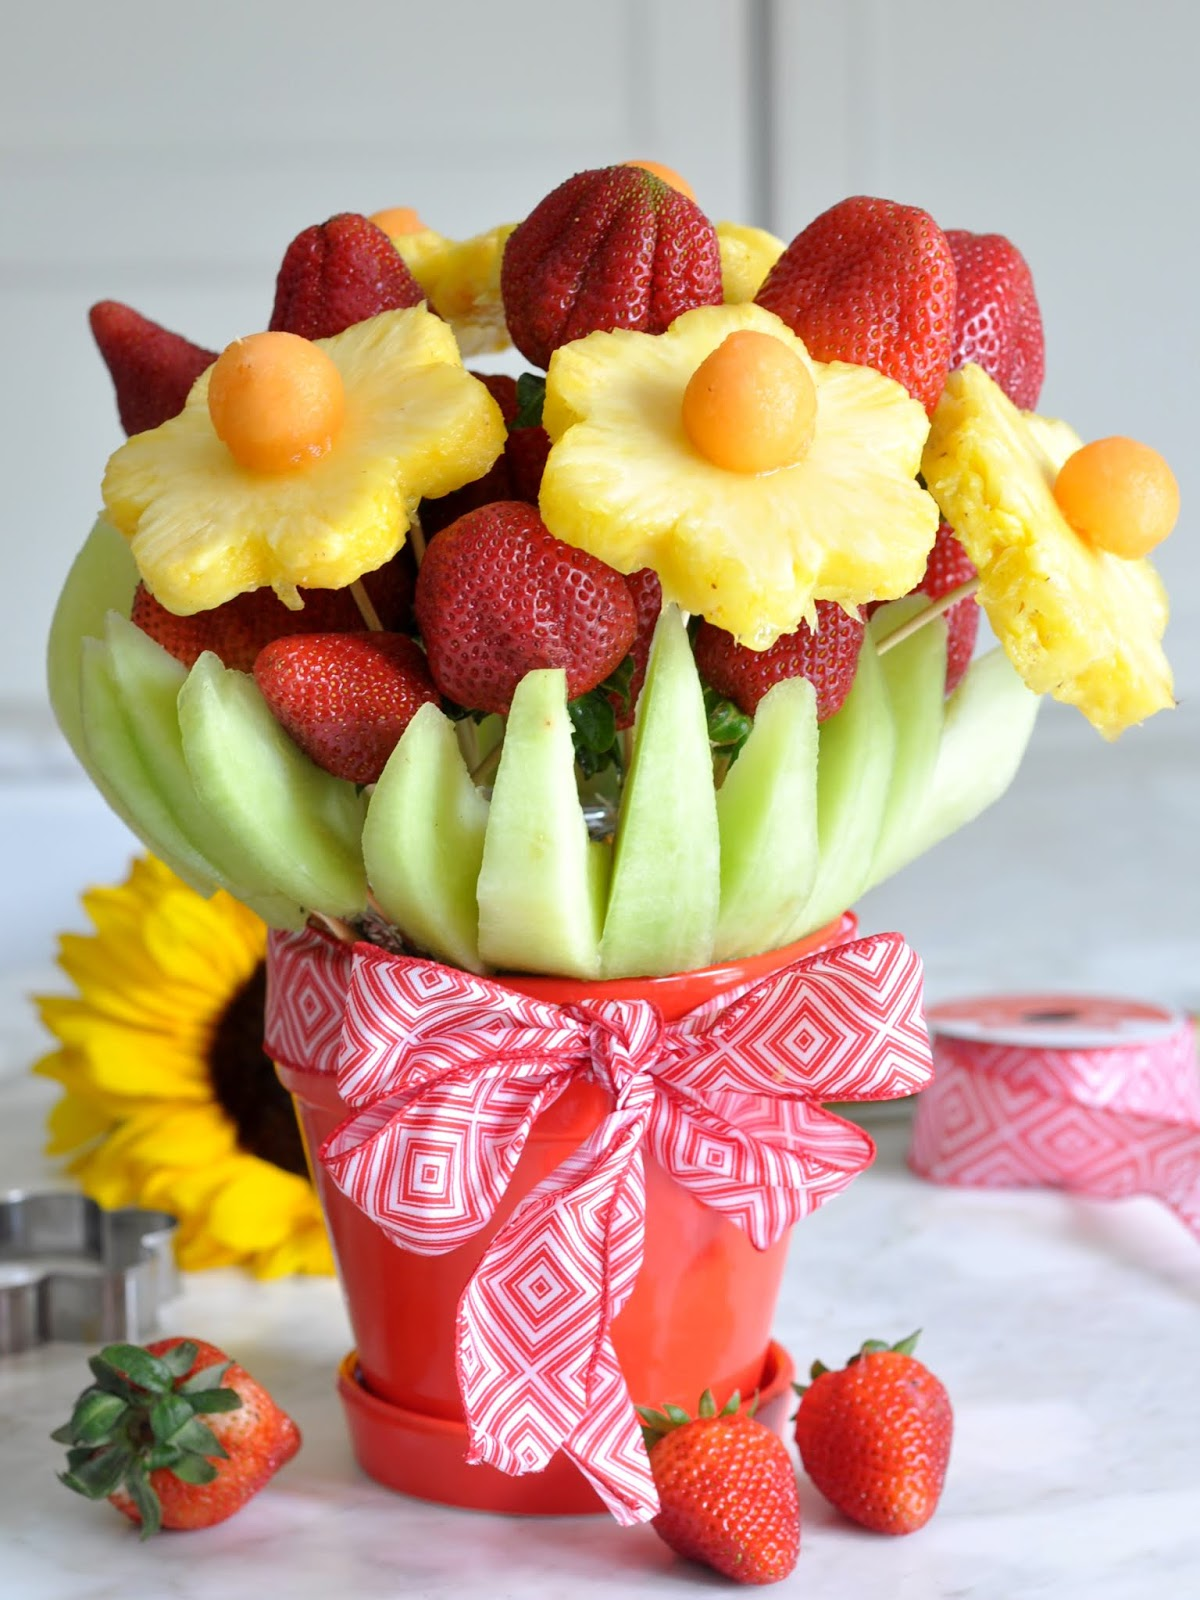 Cooking with manuela how to make an edible fresh fruit bouquet calling all creative peeps out there here is something for you something you can handcraft for your next partyybe this coming holiday weekend izmirmasajfo